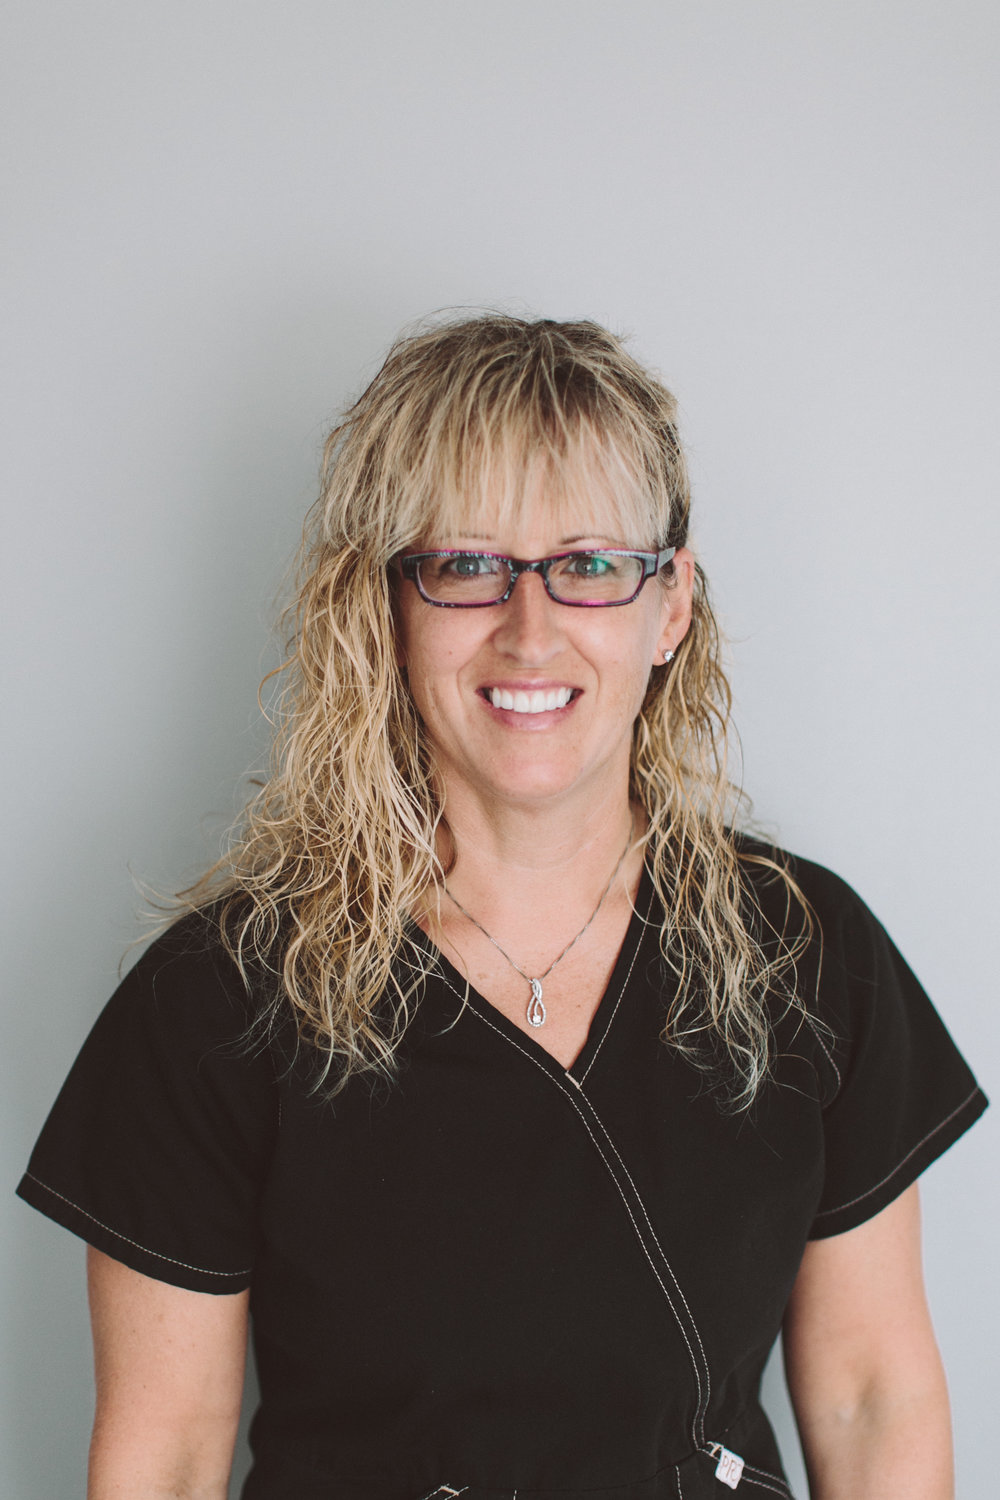 Denyse - Denyse is a Certified Dental Assistant with over 20 years experience within the Barzan Family Dental practice.Patient comfort is her top priority. Seeing nervous patients relax and feel comfortable during their dental appointment is what her job is all about.Away from the office, Denyse enjoys singing, baking and most of all spending time with her daughter, Hannah.